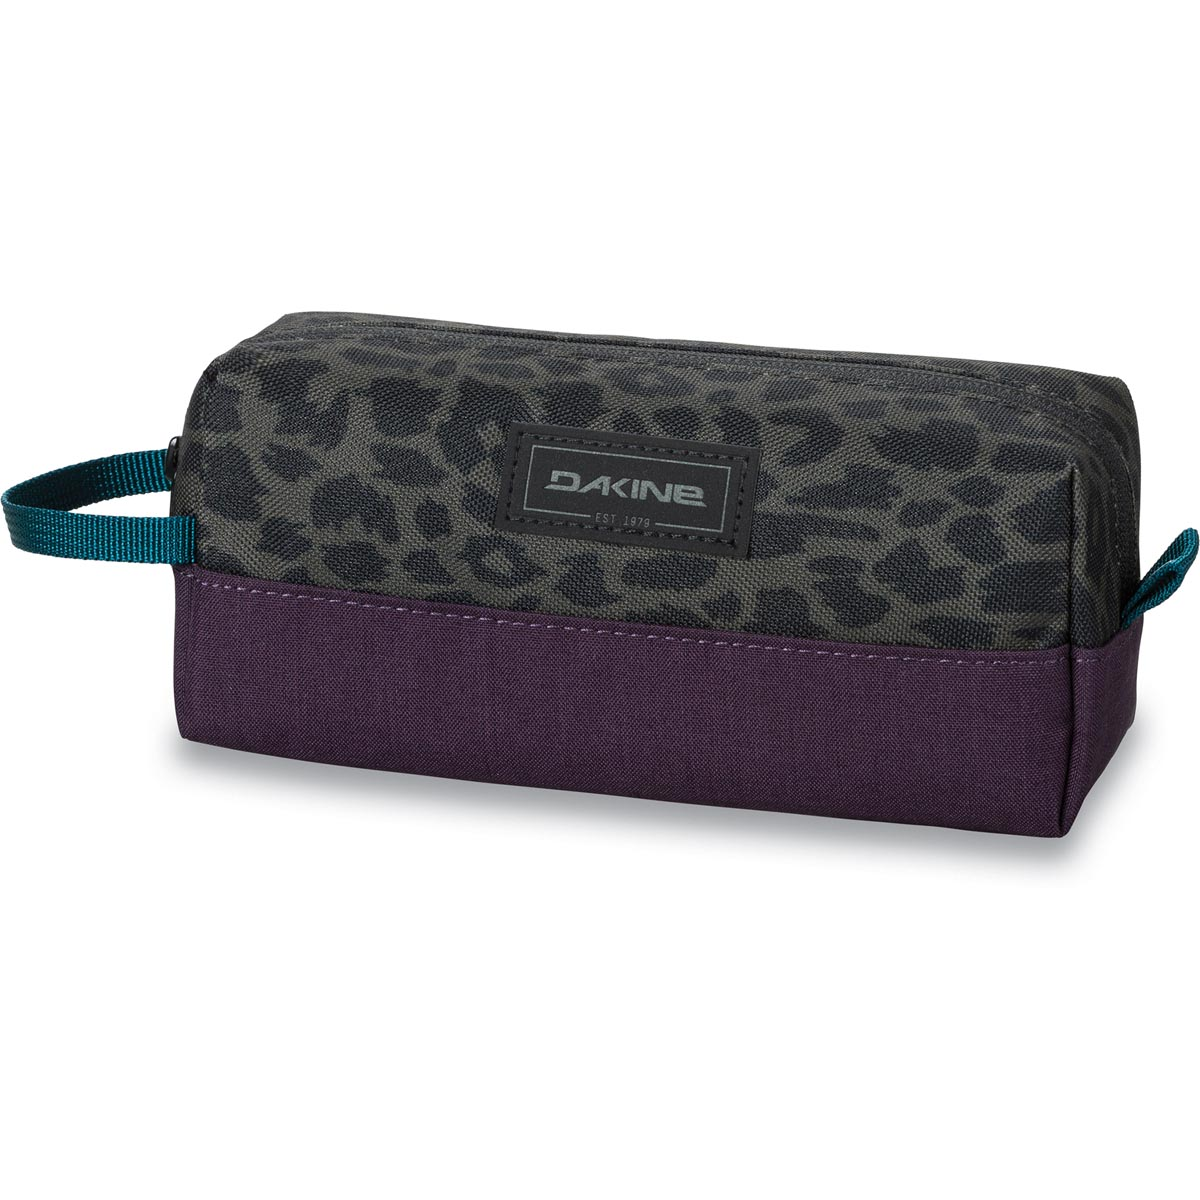 Piórnik Dakine Accessory Case Wildside